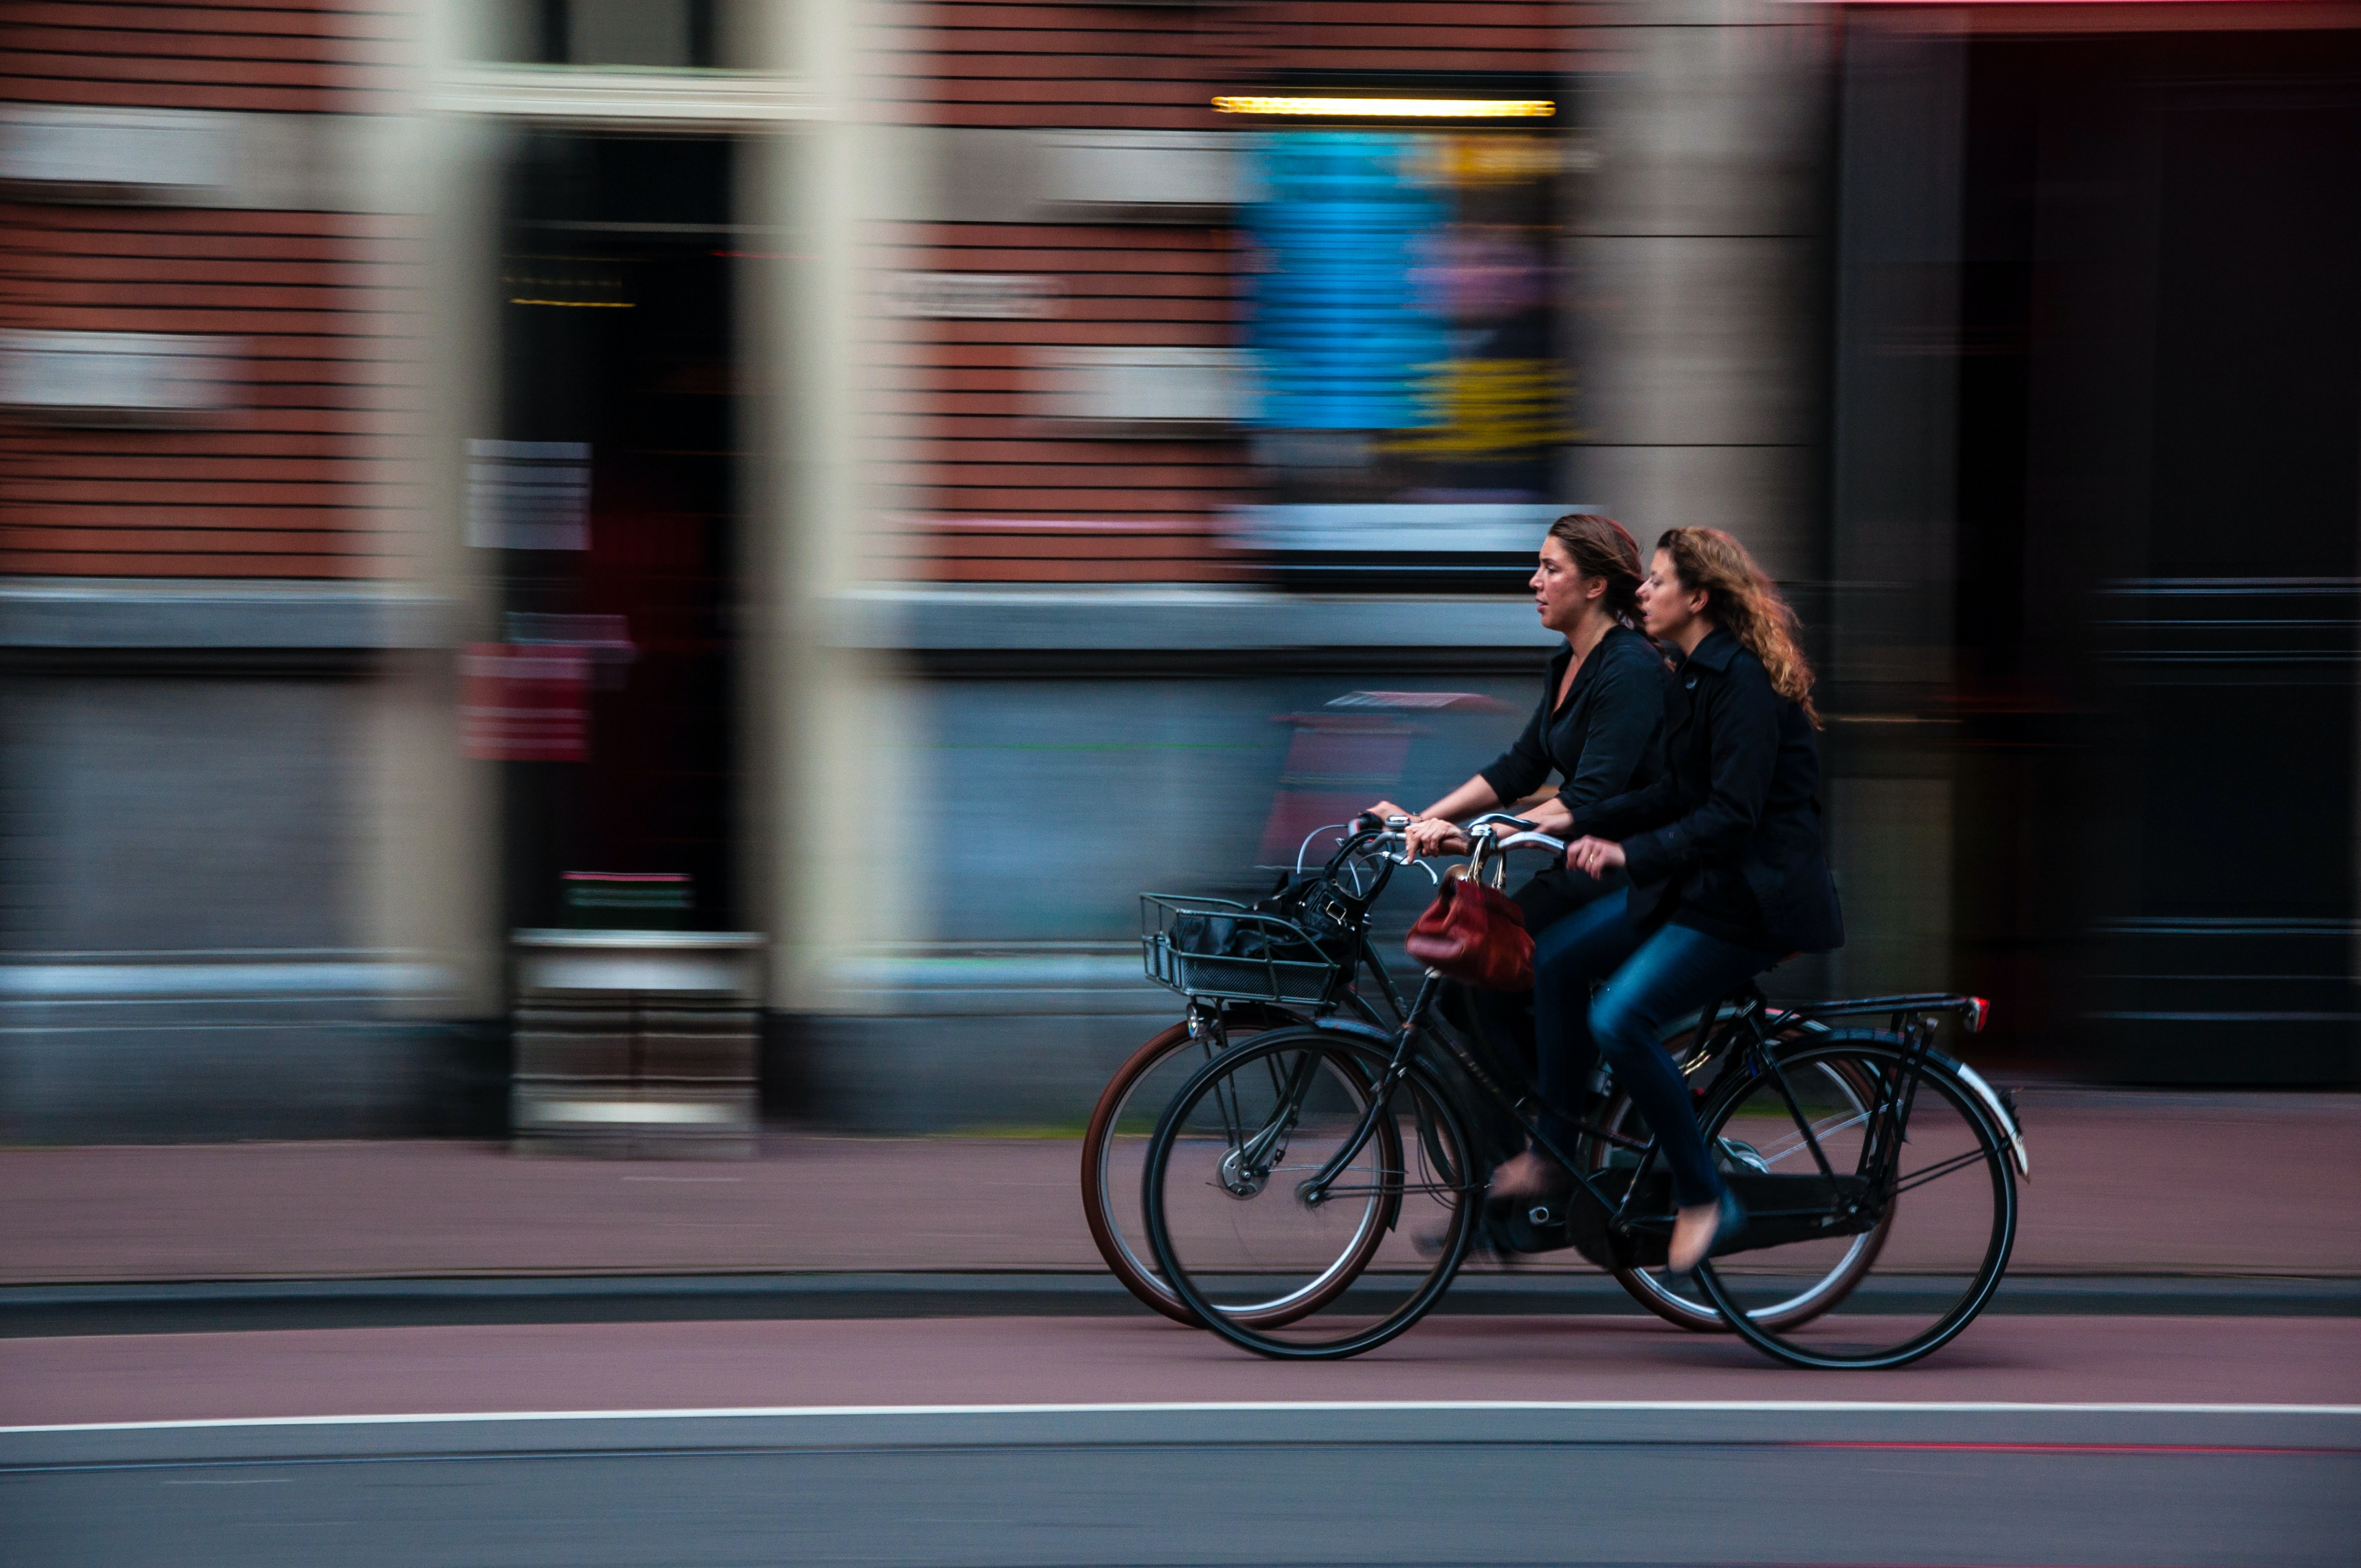 time lapse photography of two person riding bicycle